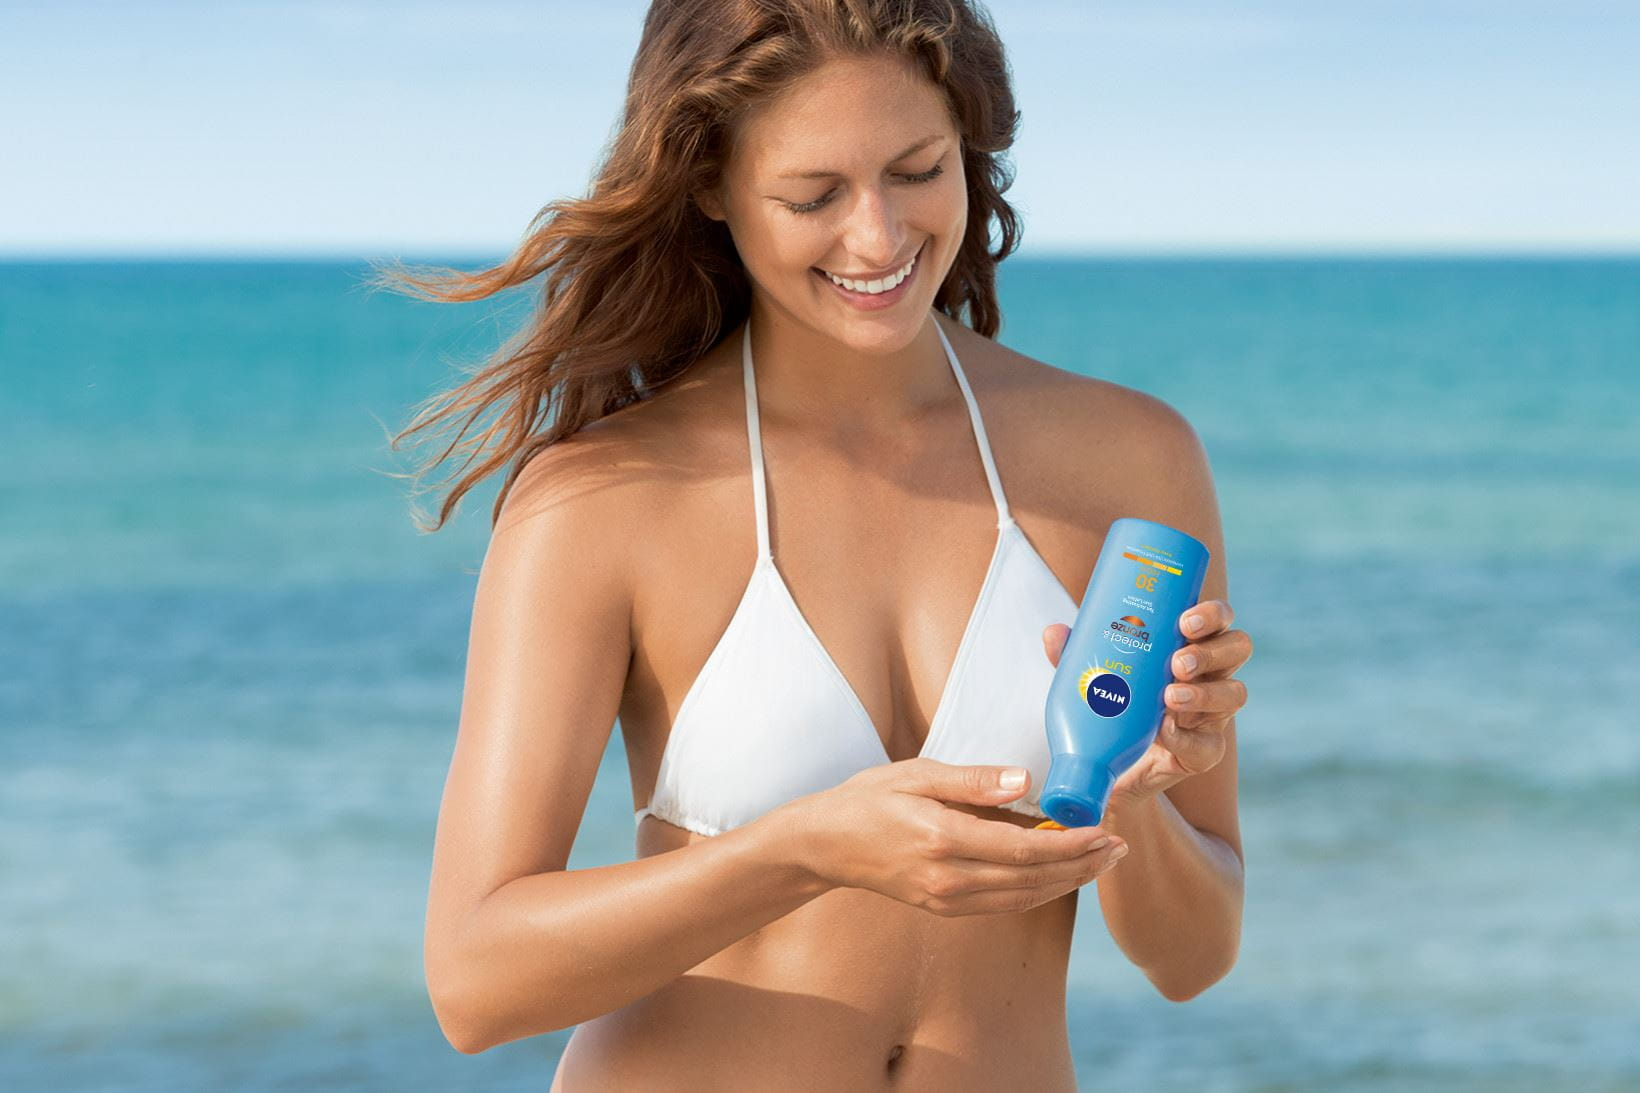 NIVEA SUN Protect & Bronze Tan Activating Protecting Oil gives you a beautiful, even tan